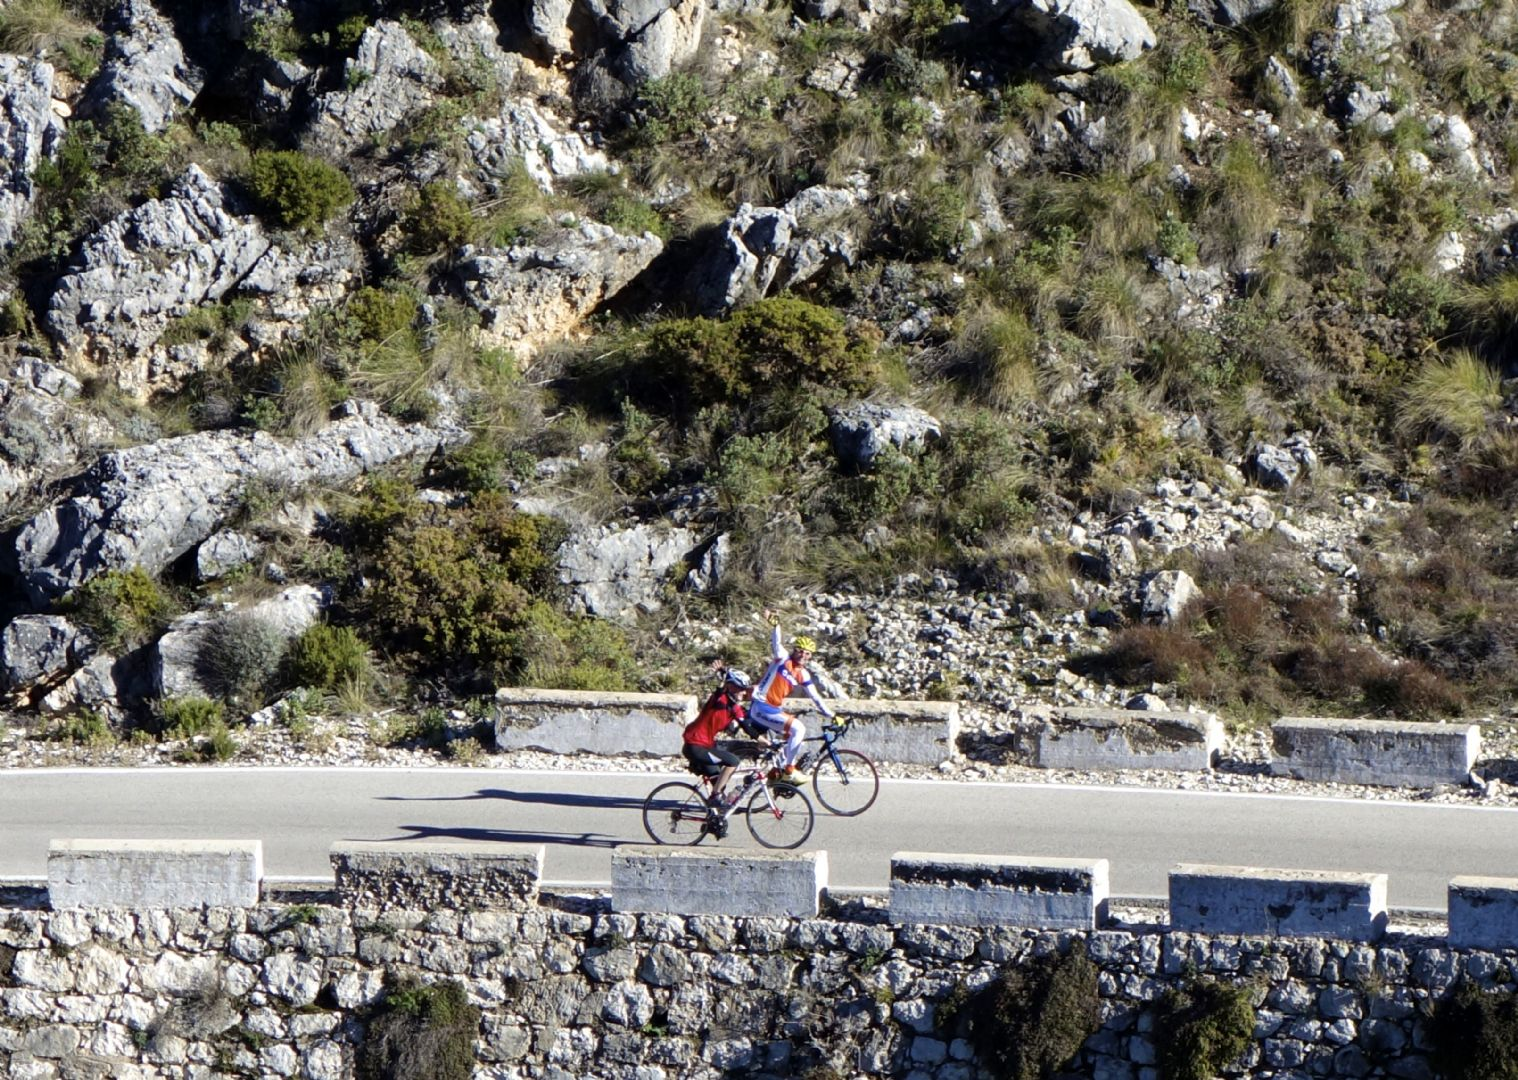 spainroadcyclingronda32.jpg - Southern Spain - Roads of Ronda - Guided Road Cycling Holiday - Road Cycling